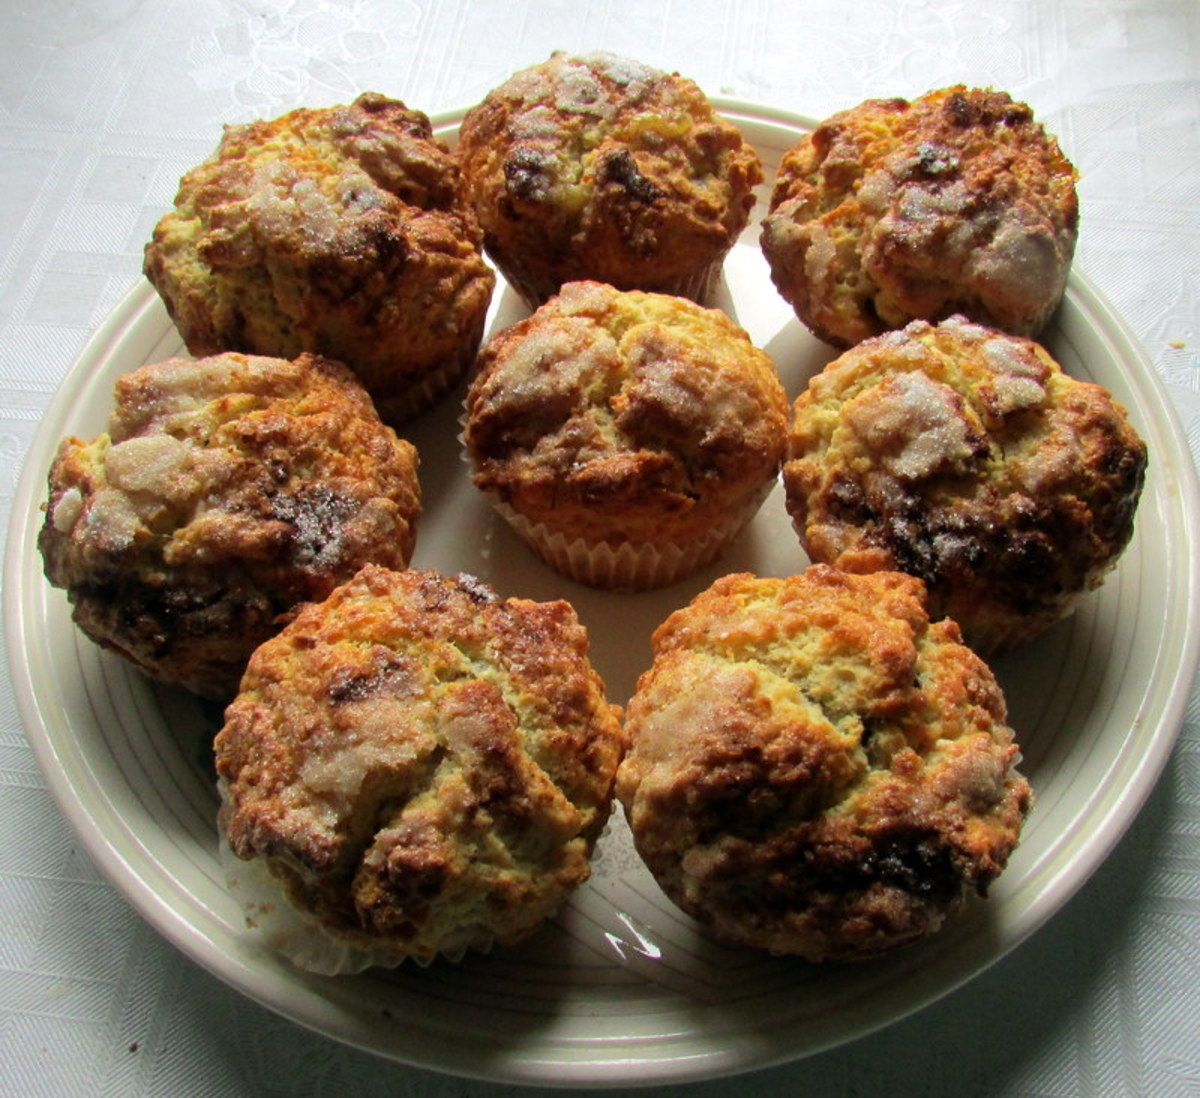 Plate of fluffy muffins